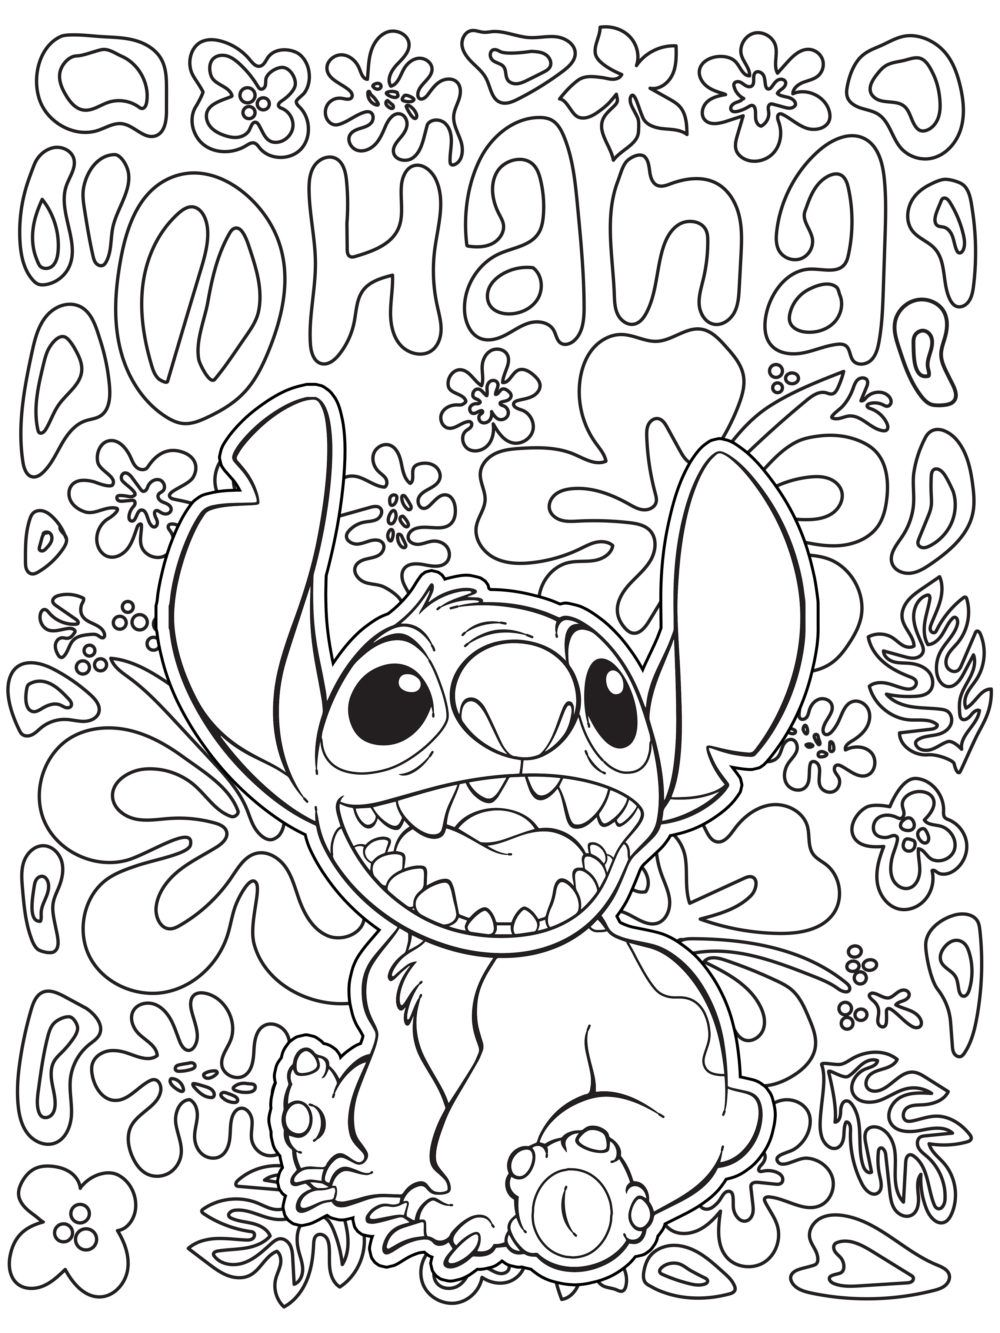 Celebrate National Coloring Book Day With Disney Style | coloring ...